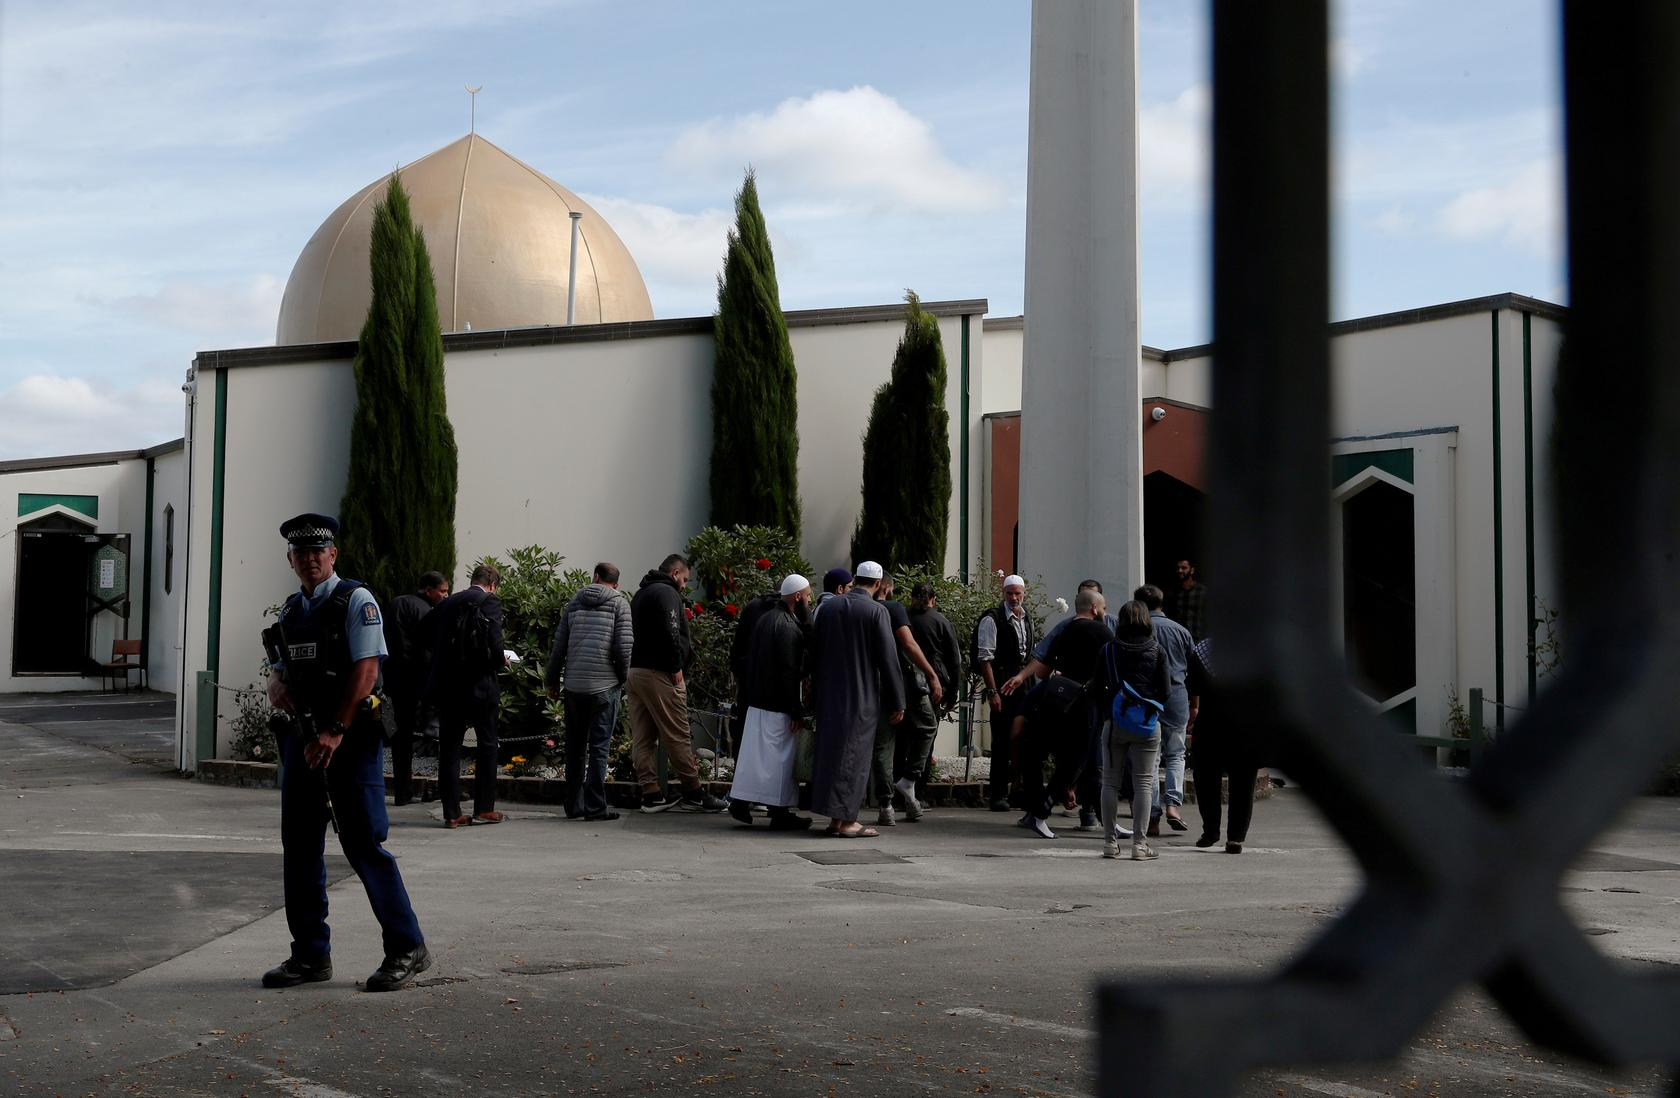 Australia blocks access to 8 websites showing video of NZ mosque attacks